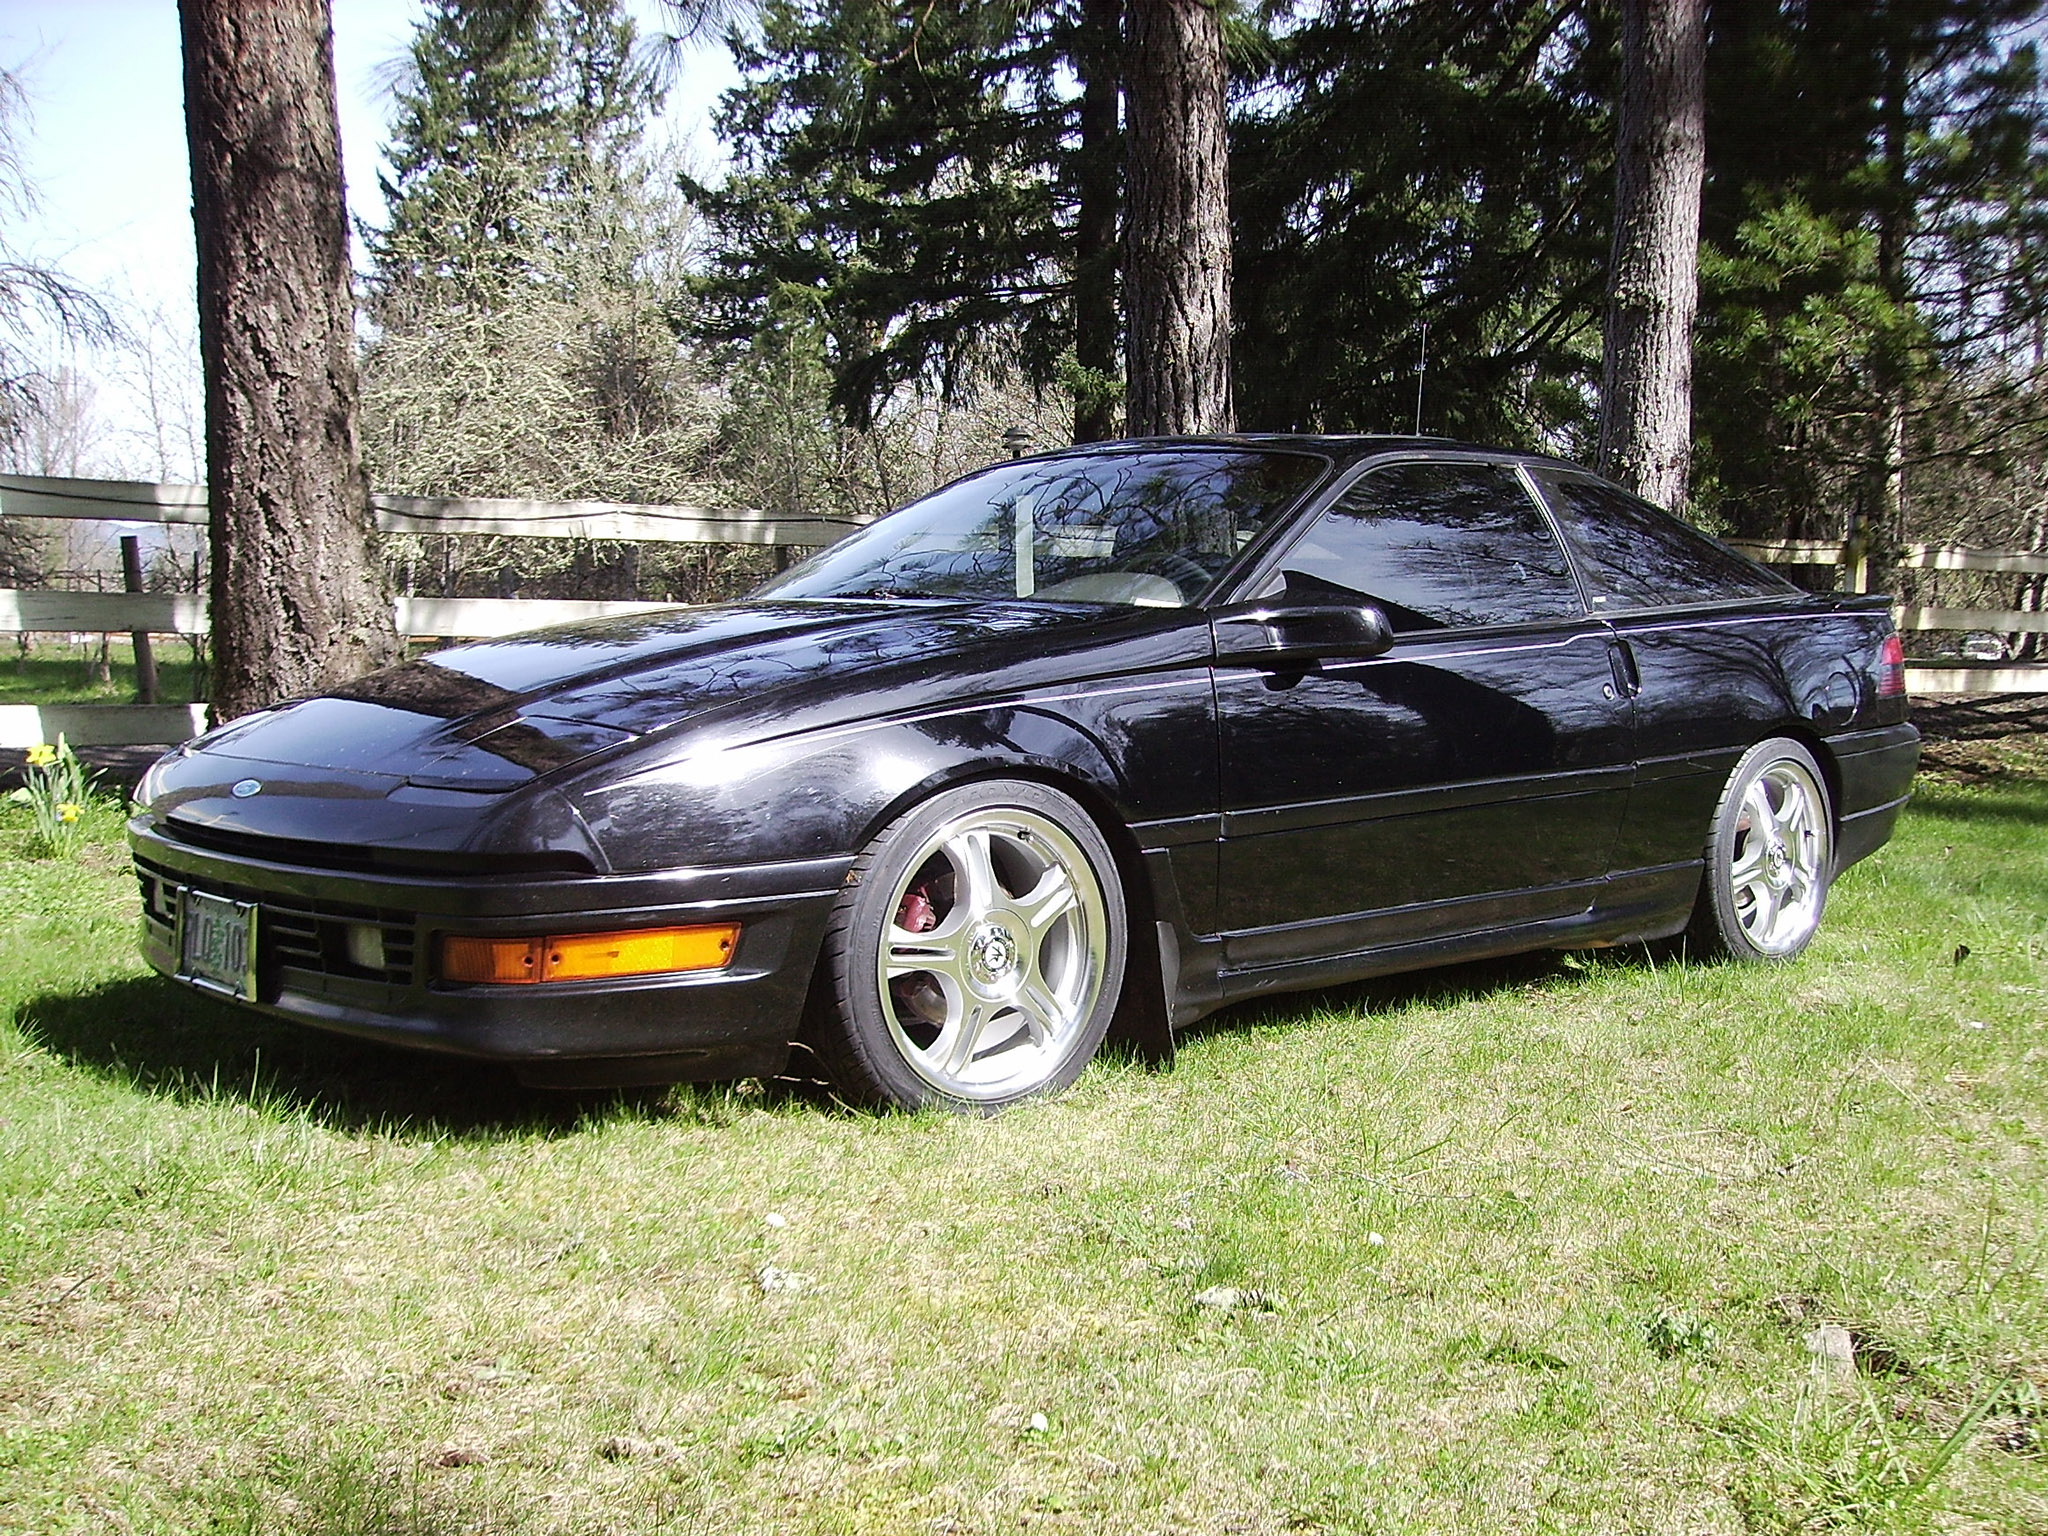 1990 Ford F 250 Pictures C5558 further Mitsubishi Starion besides 371212611098 together with Ford Probe Gt 1991 1992 Photo 11 besides 2005 Ford Fiesta Pictures C9339. on 1989 ford probe